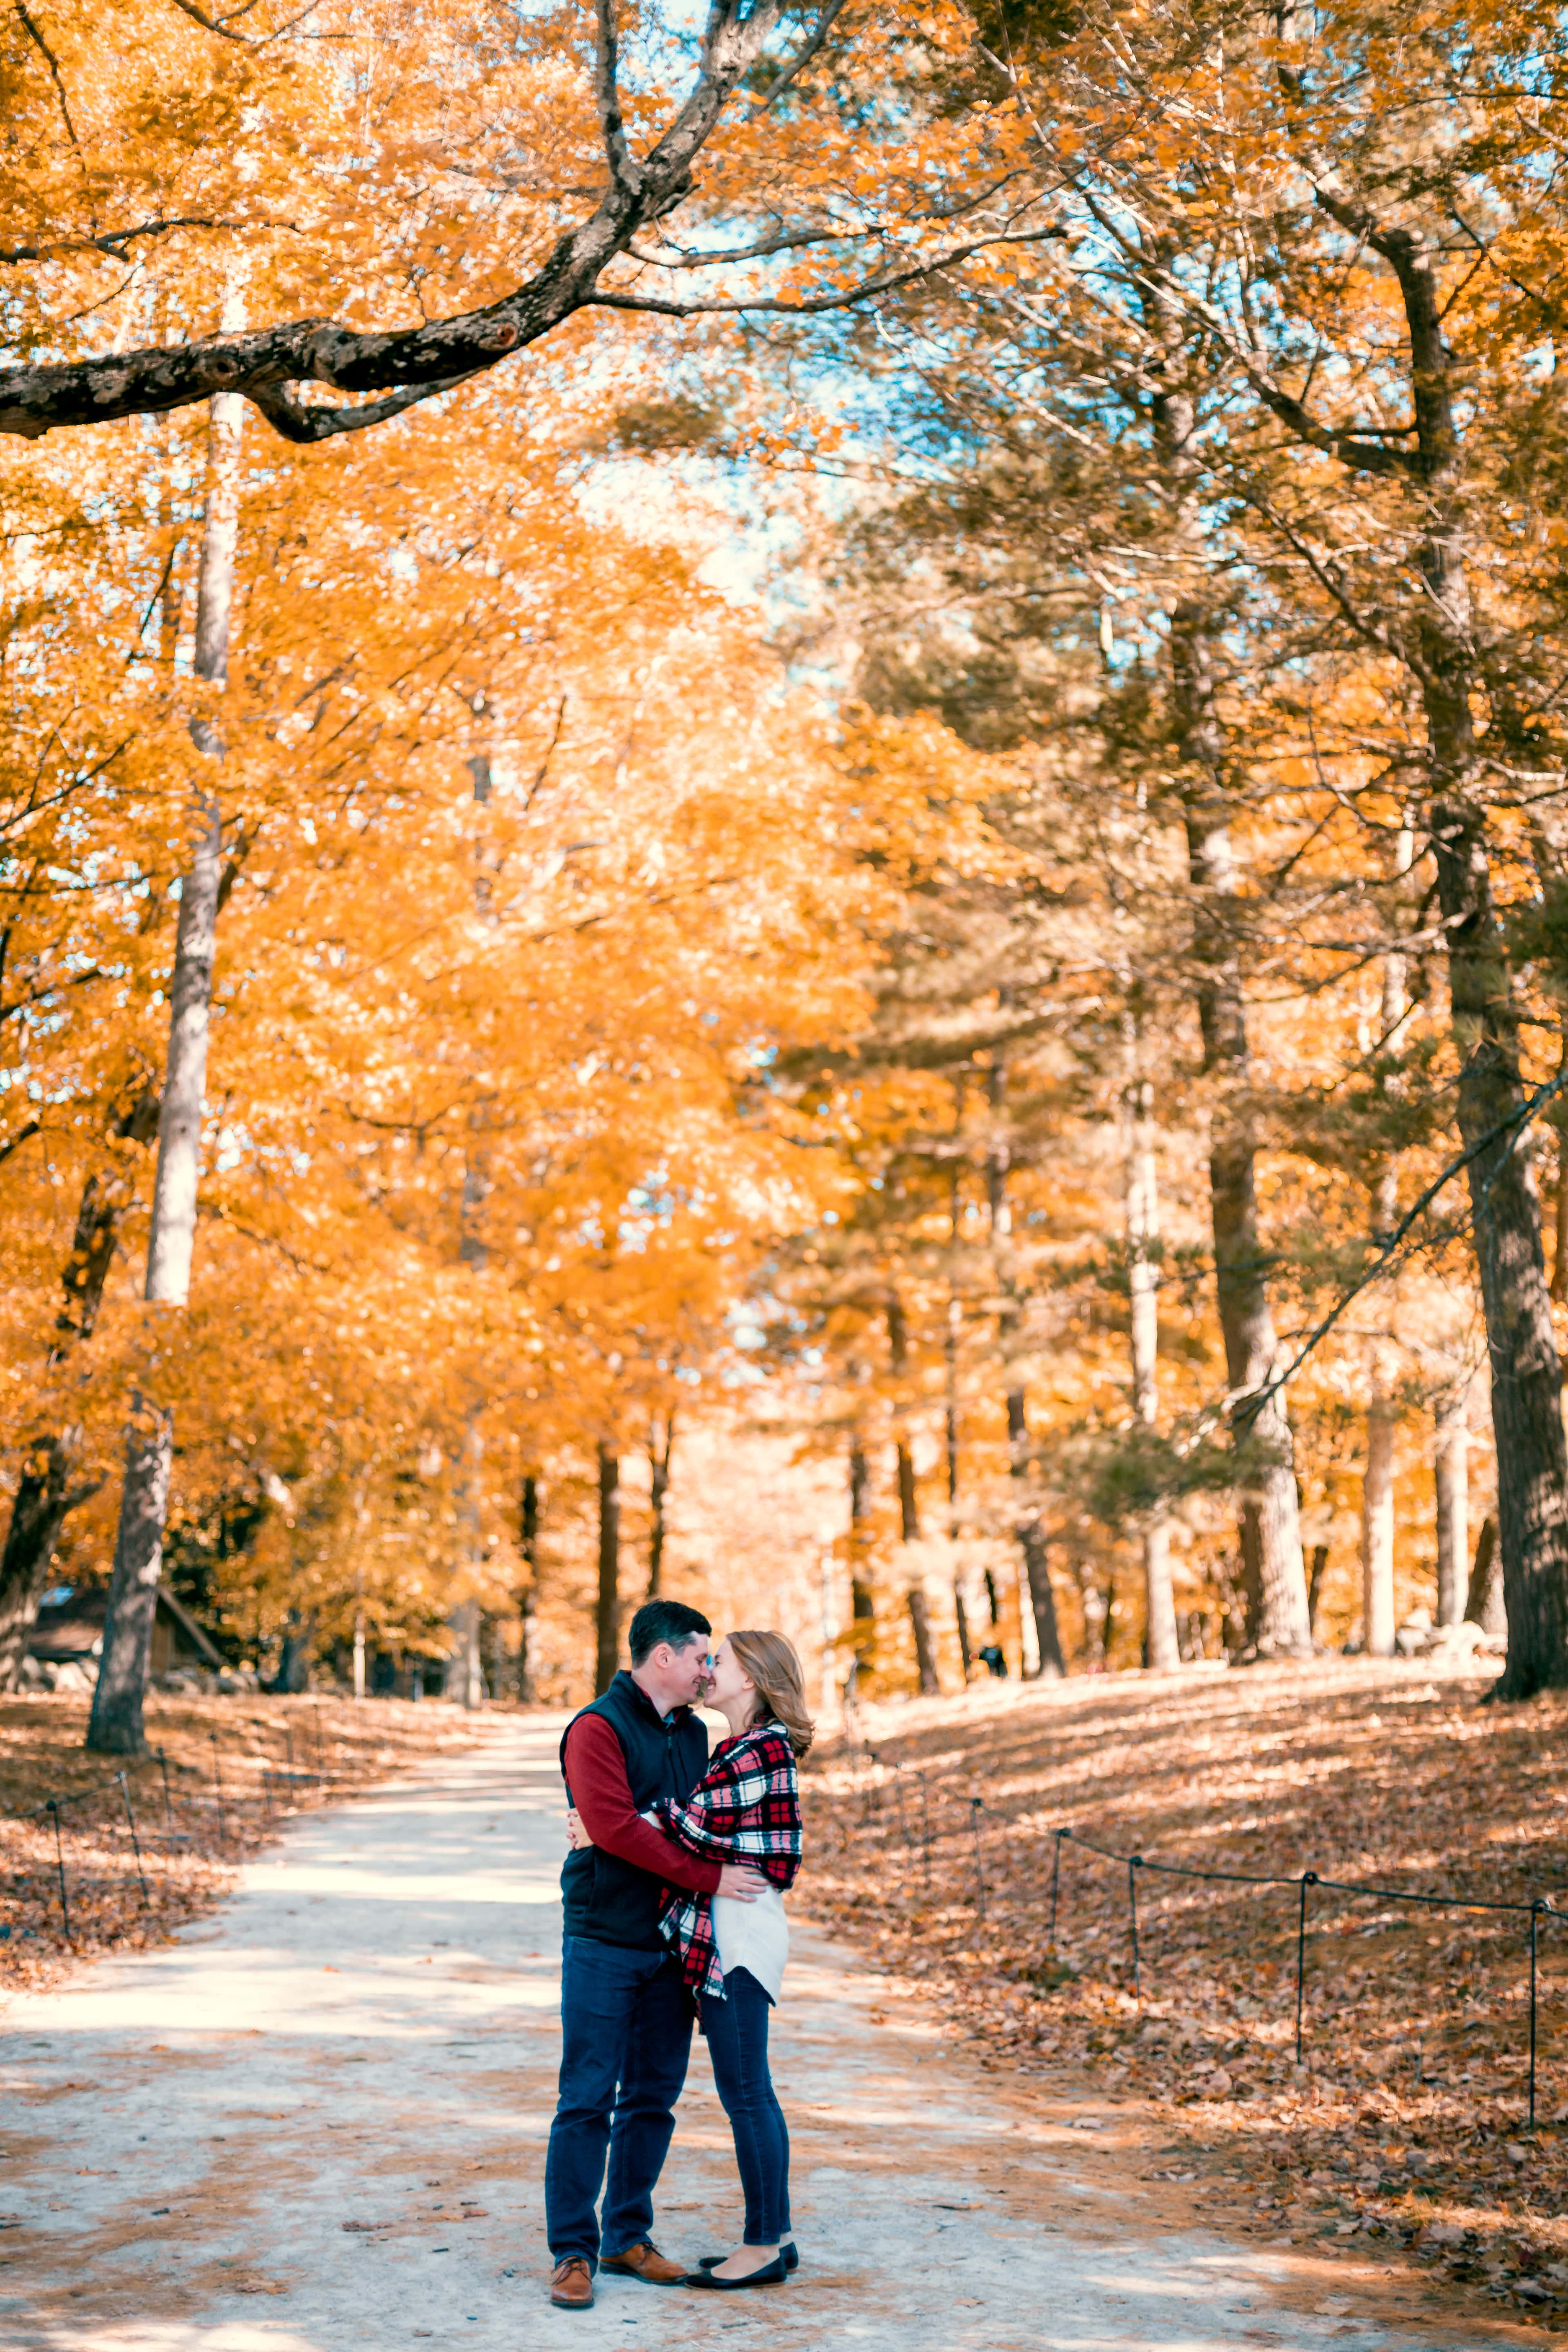 Marriage proposal photo session, engagement photographer, Middletown wedding cinematographer, Middleville village wedding cinematographer, Milford village wedding cinematographer, Millbrook village wedding cinematographer, Miller Place wedding cinematographer, Millerton village wedding cinematographer, Mill Neck village wedding cinematographer, Millport village wedding cinematographer, Milton CDP (Saratoga County) wedding cinematographer, Milton CDP (Ulster County) wedding cinematographer, Mineola village wedding cinematographer, Minetto wedding cinematographer, Mineville-Witherbee wedding cinematographer, Minoa village wedding cinematographer, Mohawk village wedding cinematographer, Monroe village wedding cinematographer, Monsey wedding cinematographer, Montauk wedding cinematographer, Montebello village wedding cinematographer, Montgomery village wedding cinematographer, Monticello village wedding cinematographer, Montour Falls village wedding cinematographer, Mooers wedding cinematographer, Moravia village wedding cinematographer, Moriches wedding cinematographer, Morris village wedding cinematographer, Morrisonville wedding cinematographer, Morristown village wedding cinematographer, Morrisville village wedding cinematographer, Mount Ivy wedding cinematographer, Mount Kisco village wedding cinematographer, Mount Morris village wedding cinematographer, Mount Sinai wedding cinematographer, Mount Vernon wedding cinematographer, Munnsville village wedding cinematographer, Munsey Park village wedding cinematographer, Munsons Corners wedding cinematographer, Muttontown village wedding cinematographer, Myers Corner wedding cinematographer